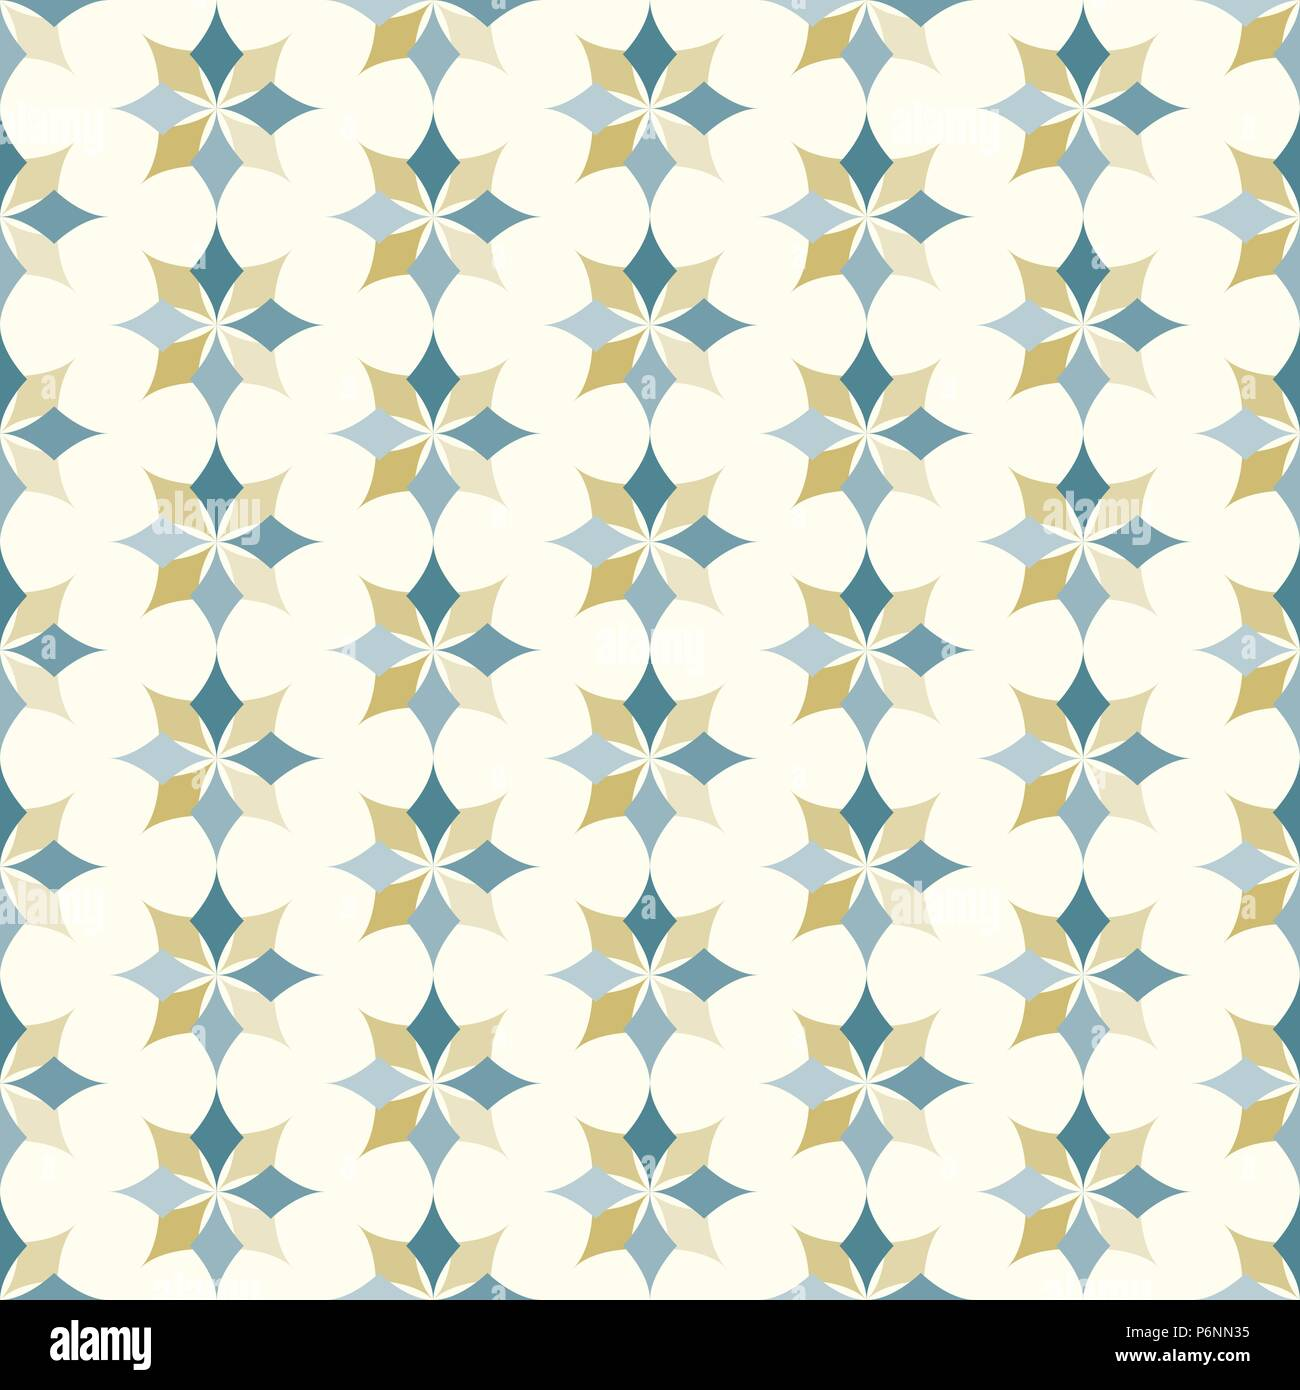 Dark blue and brown modern classic bloom seamless pattern. Abstract blossom style for graphic and retro design. - Stock Vector